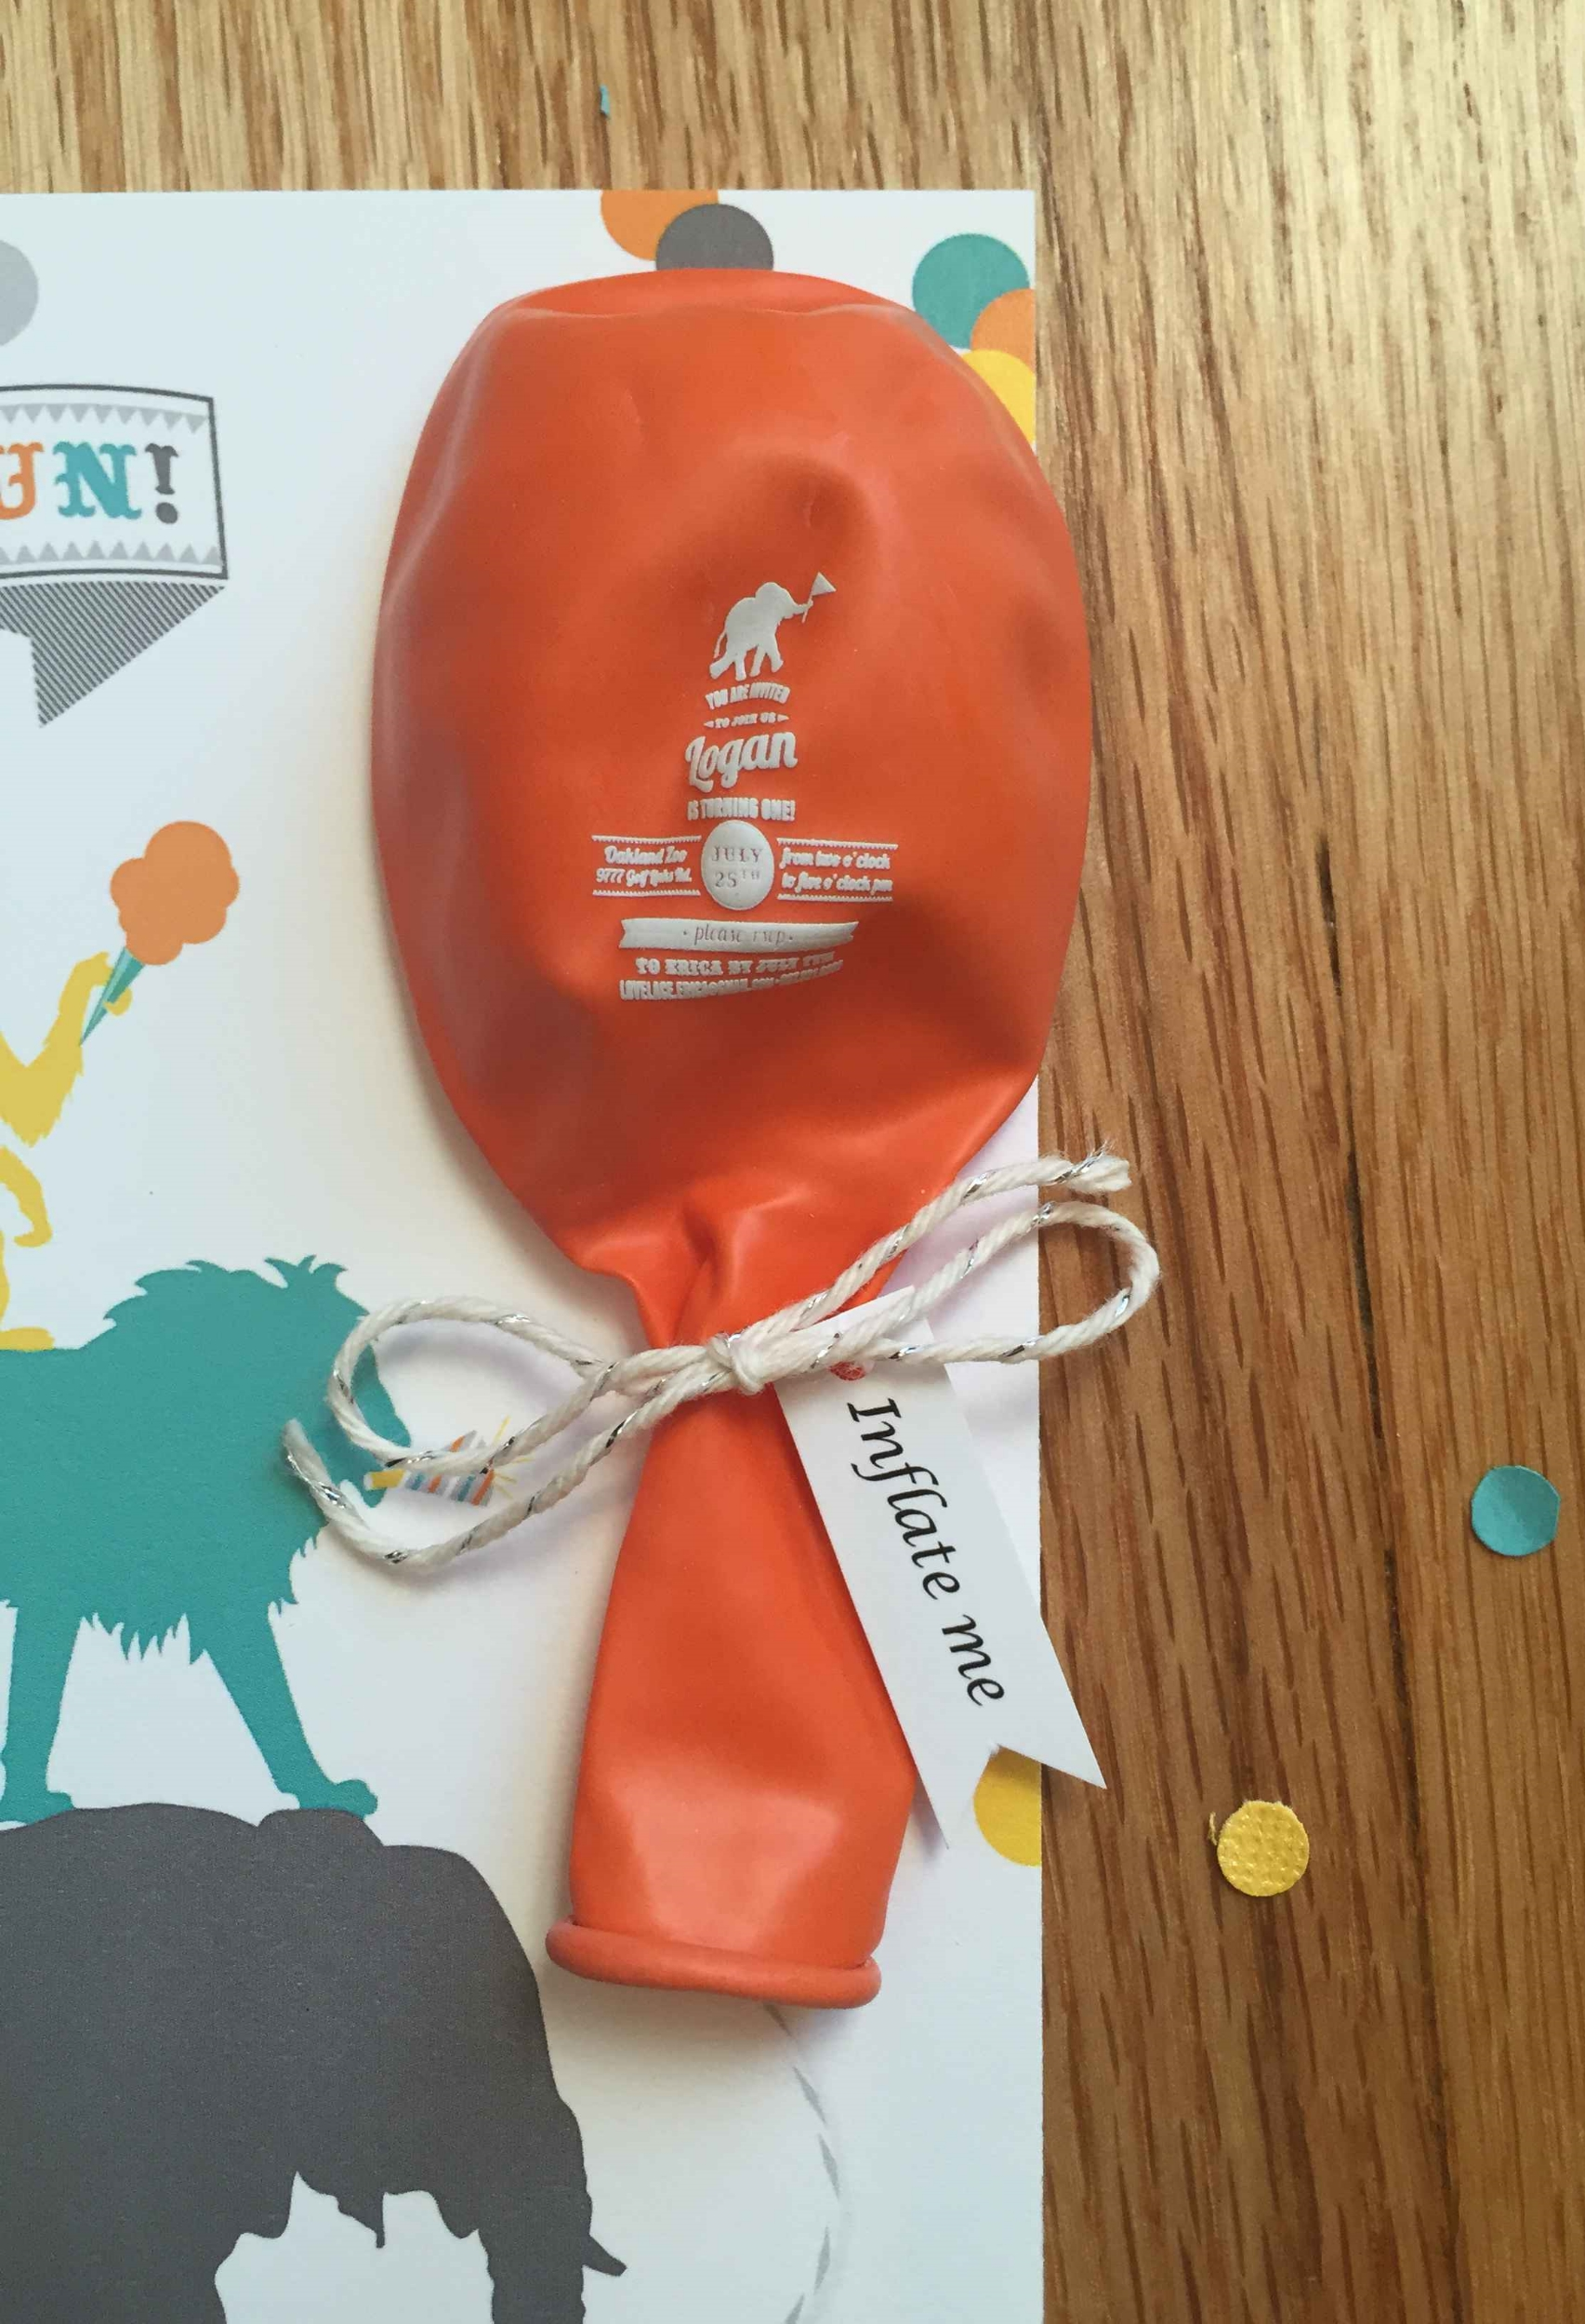 "img src=""httpwww.theparkwayevents.jpg"" alt=""San Francisco Bay Area Kids Birthday Party Event Planner Zoo Balloon Invitation"".jpg"